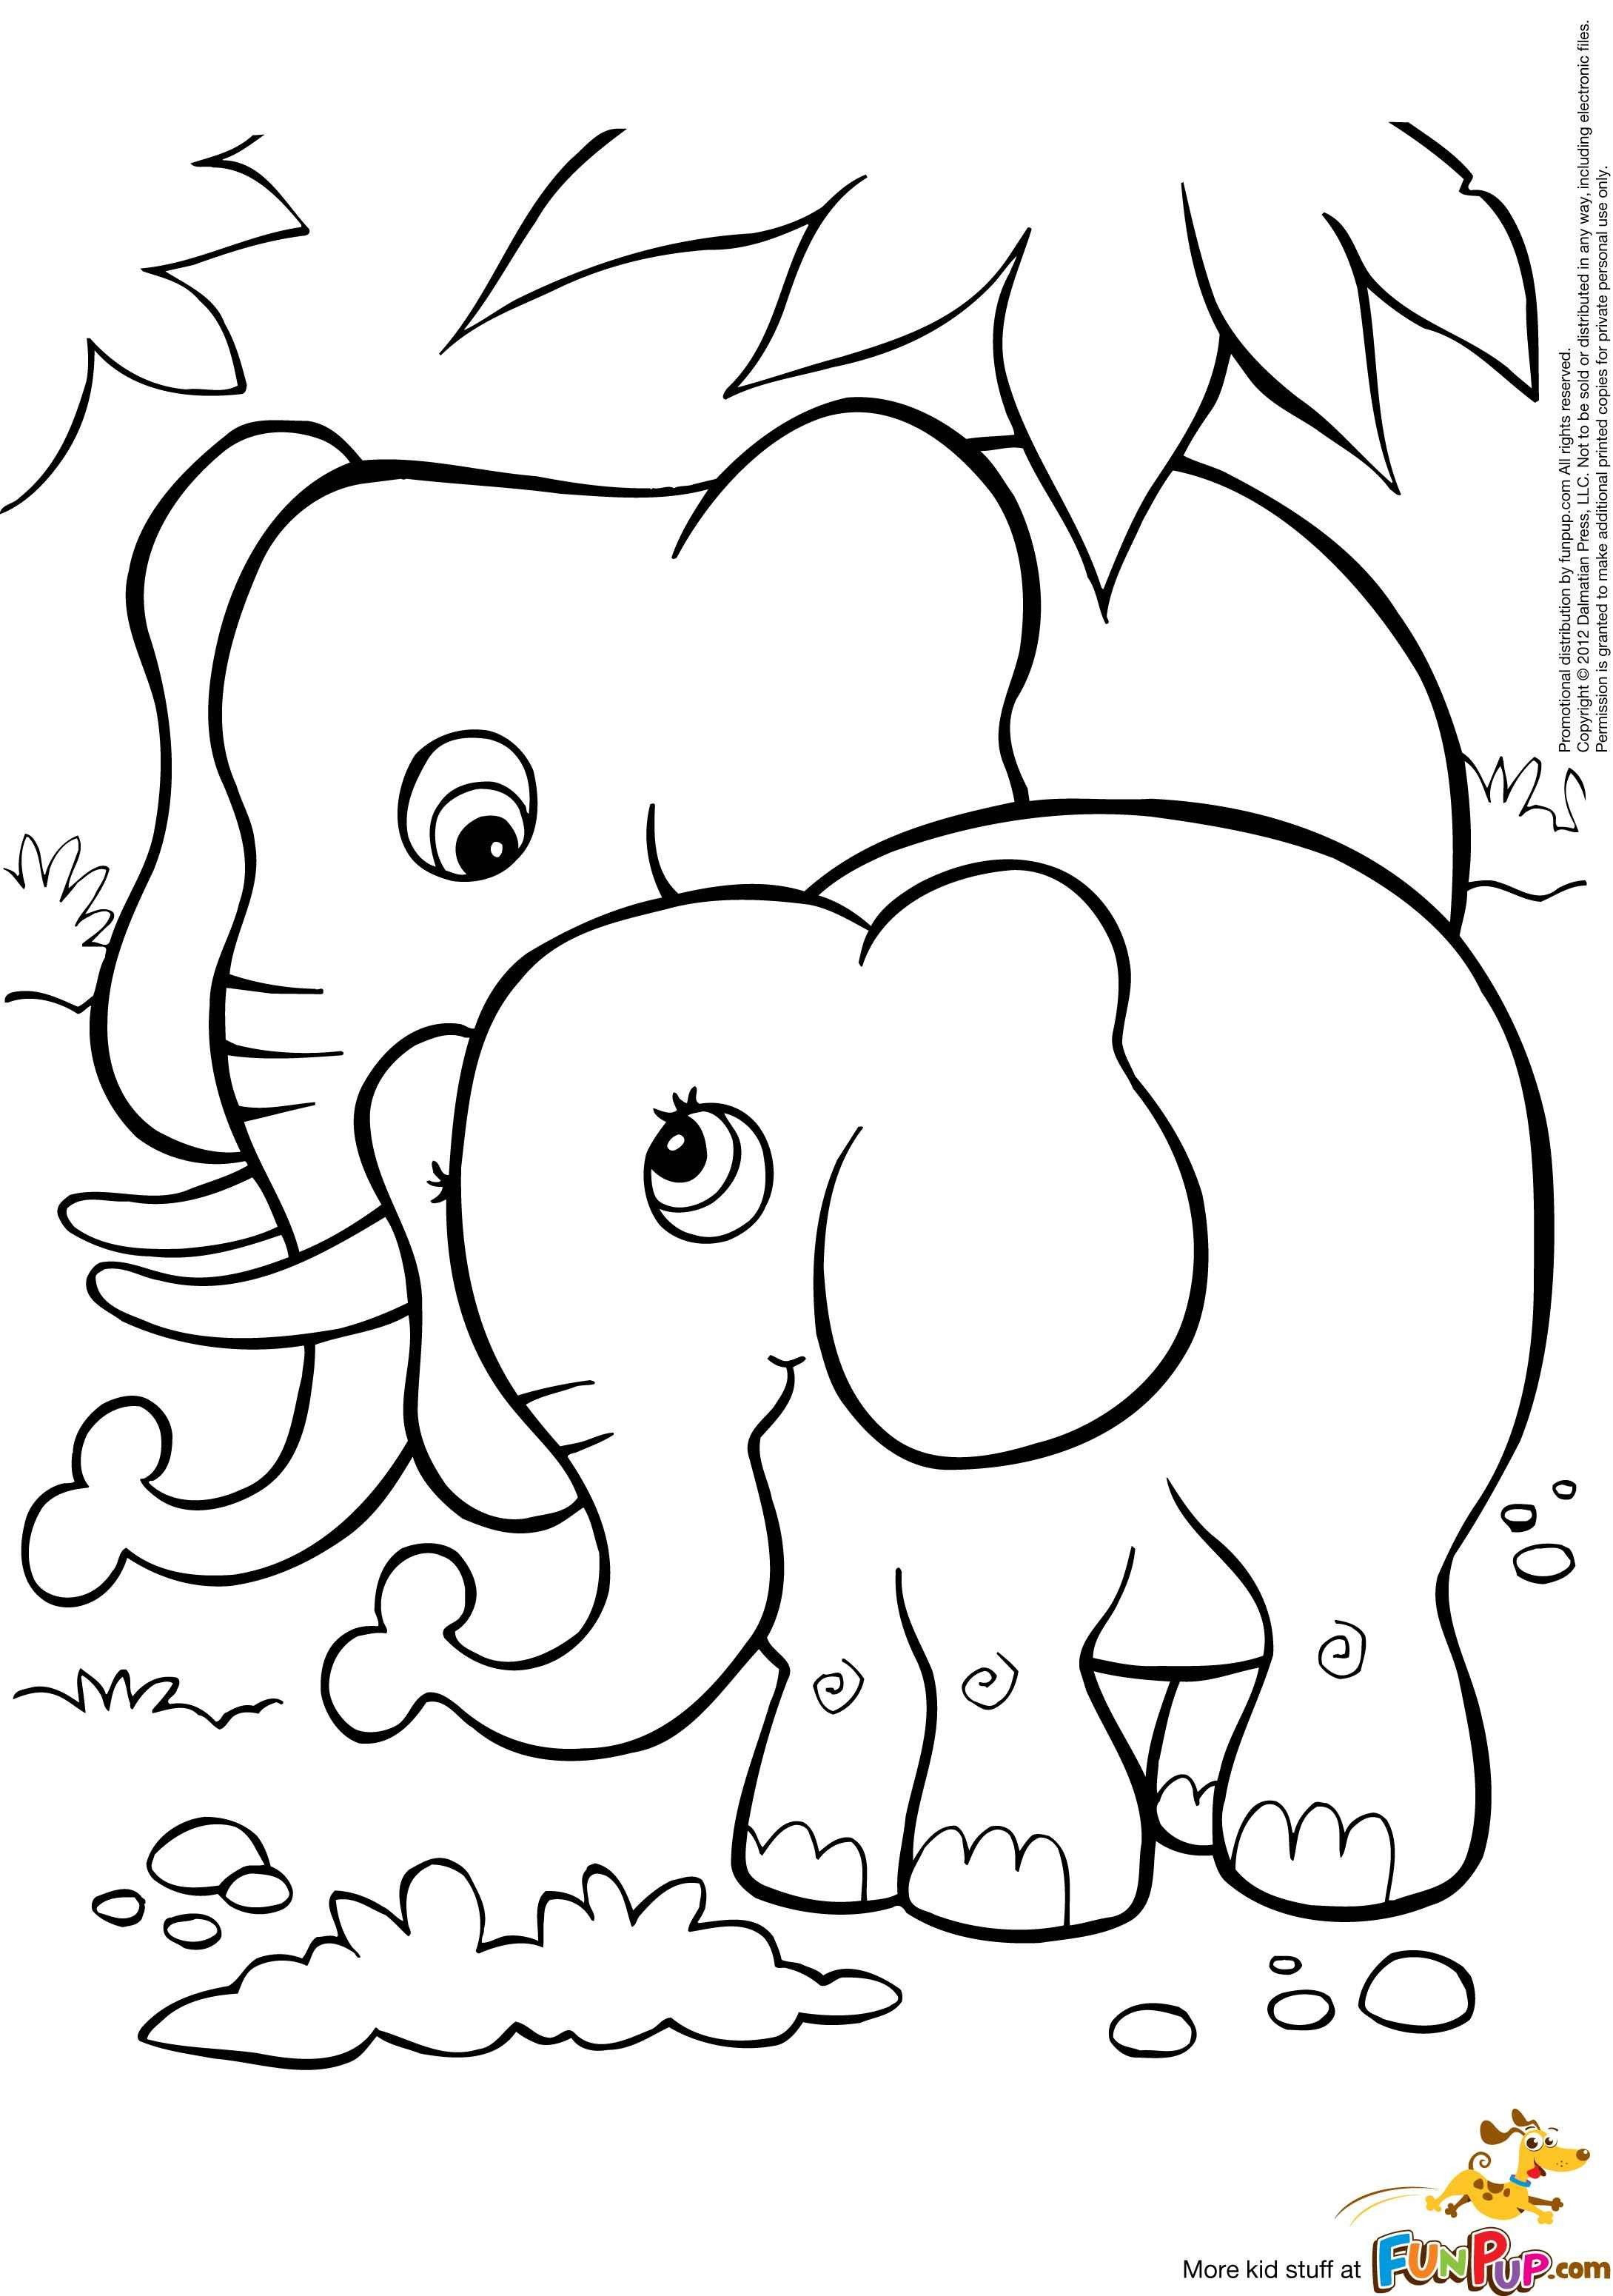 Best ideas about Coloring Book Pages Of Elephants . Save or Pin free baby elephant coloring pages Now.